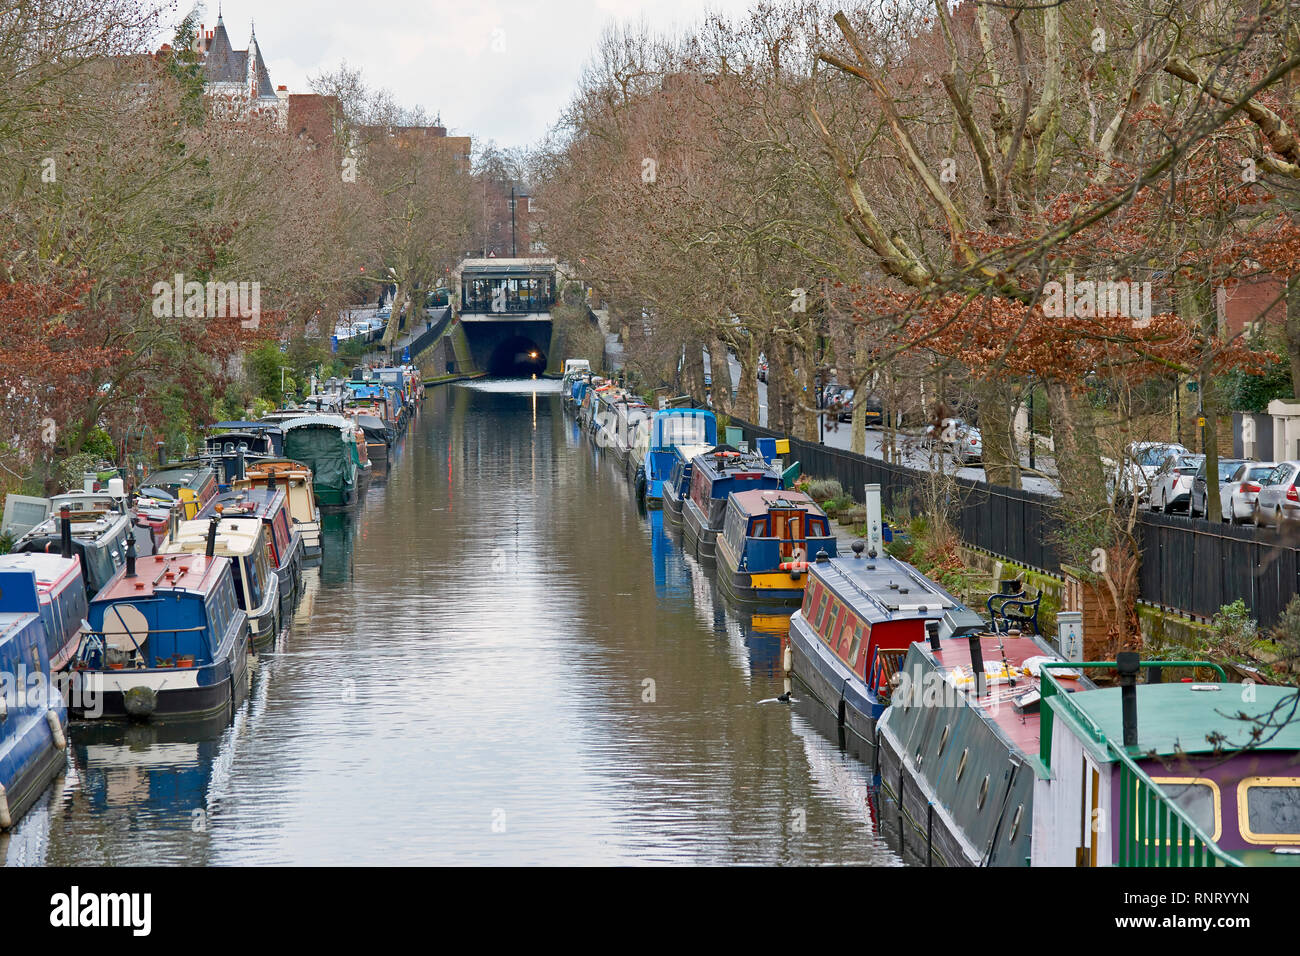 LONDON LITTLE VENICE CANAL BOATS ON THE WATER LOOKING TOWARDS THE TUNNEL AND CAFE - Stock Image